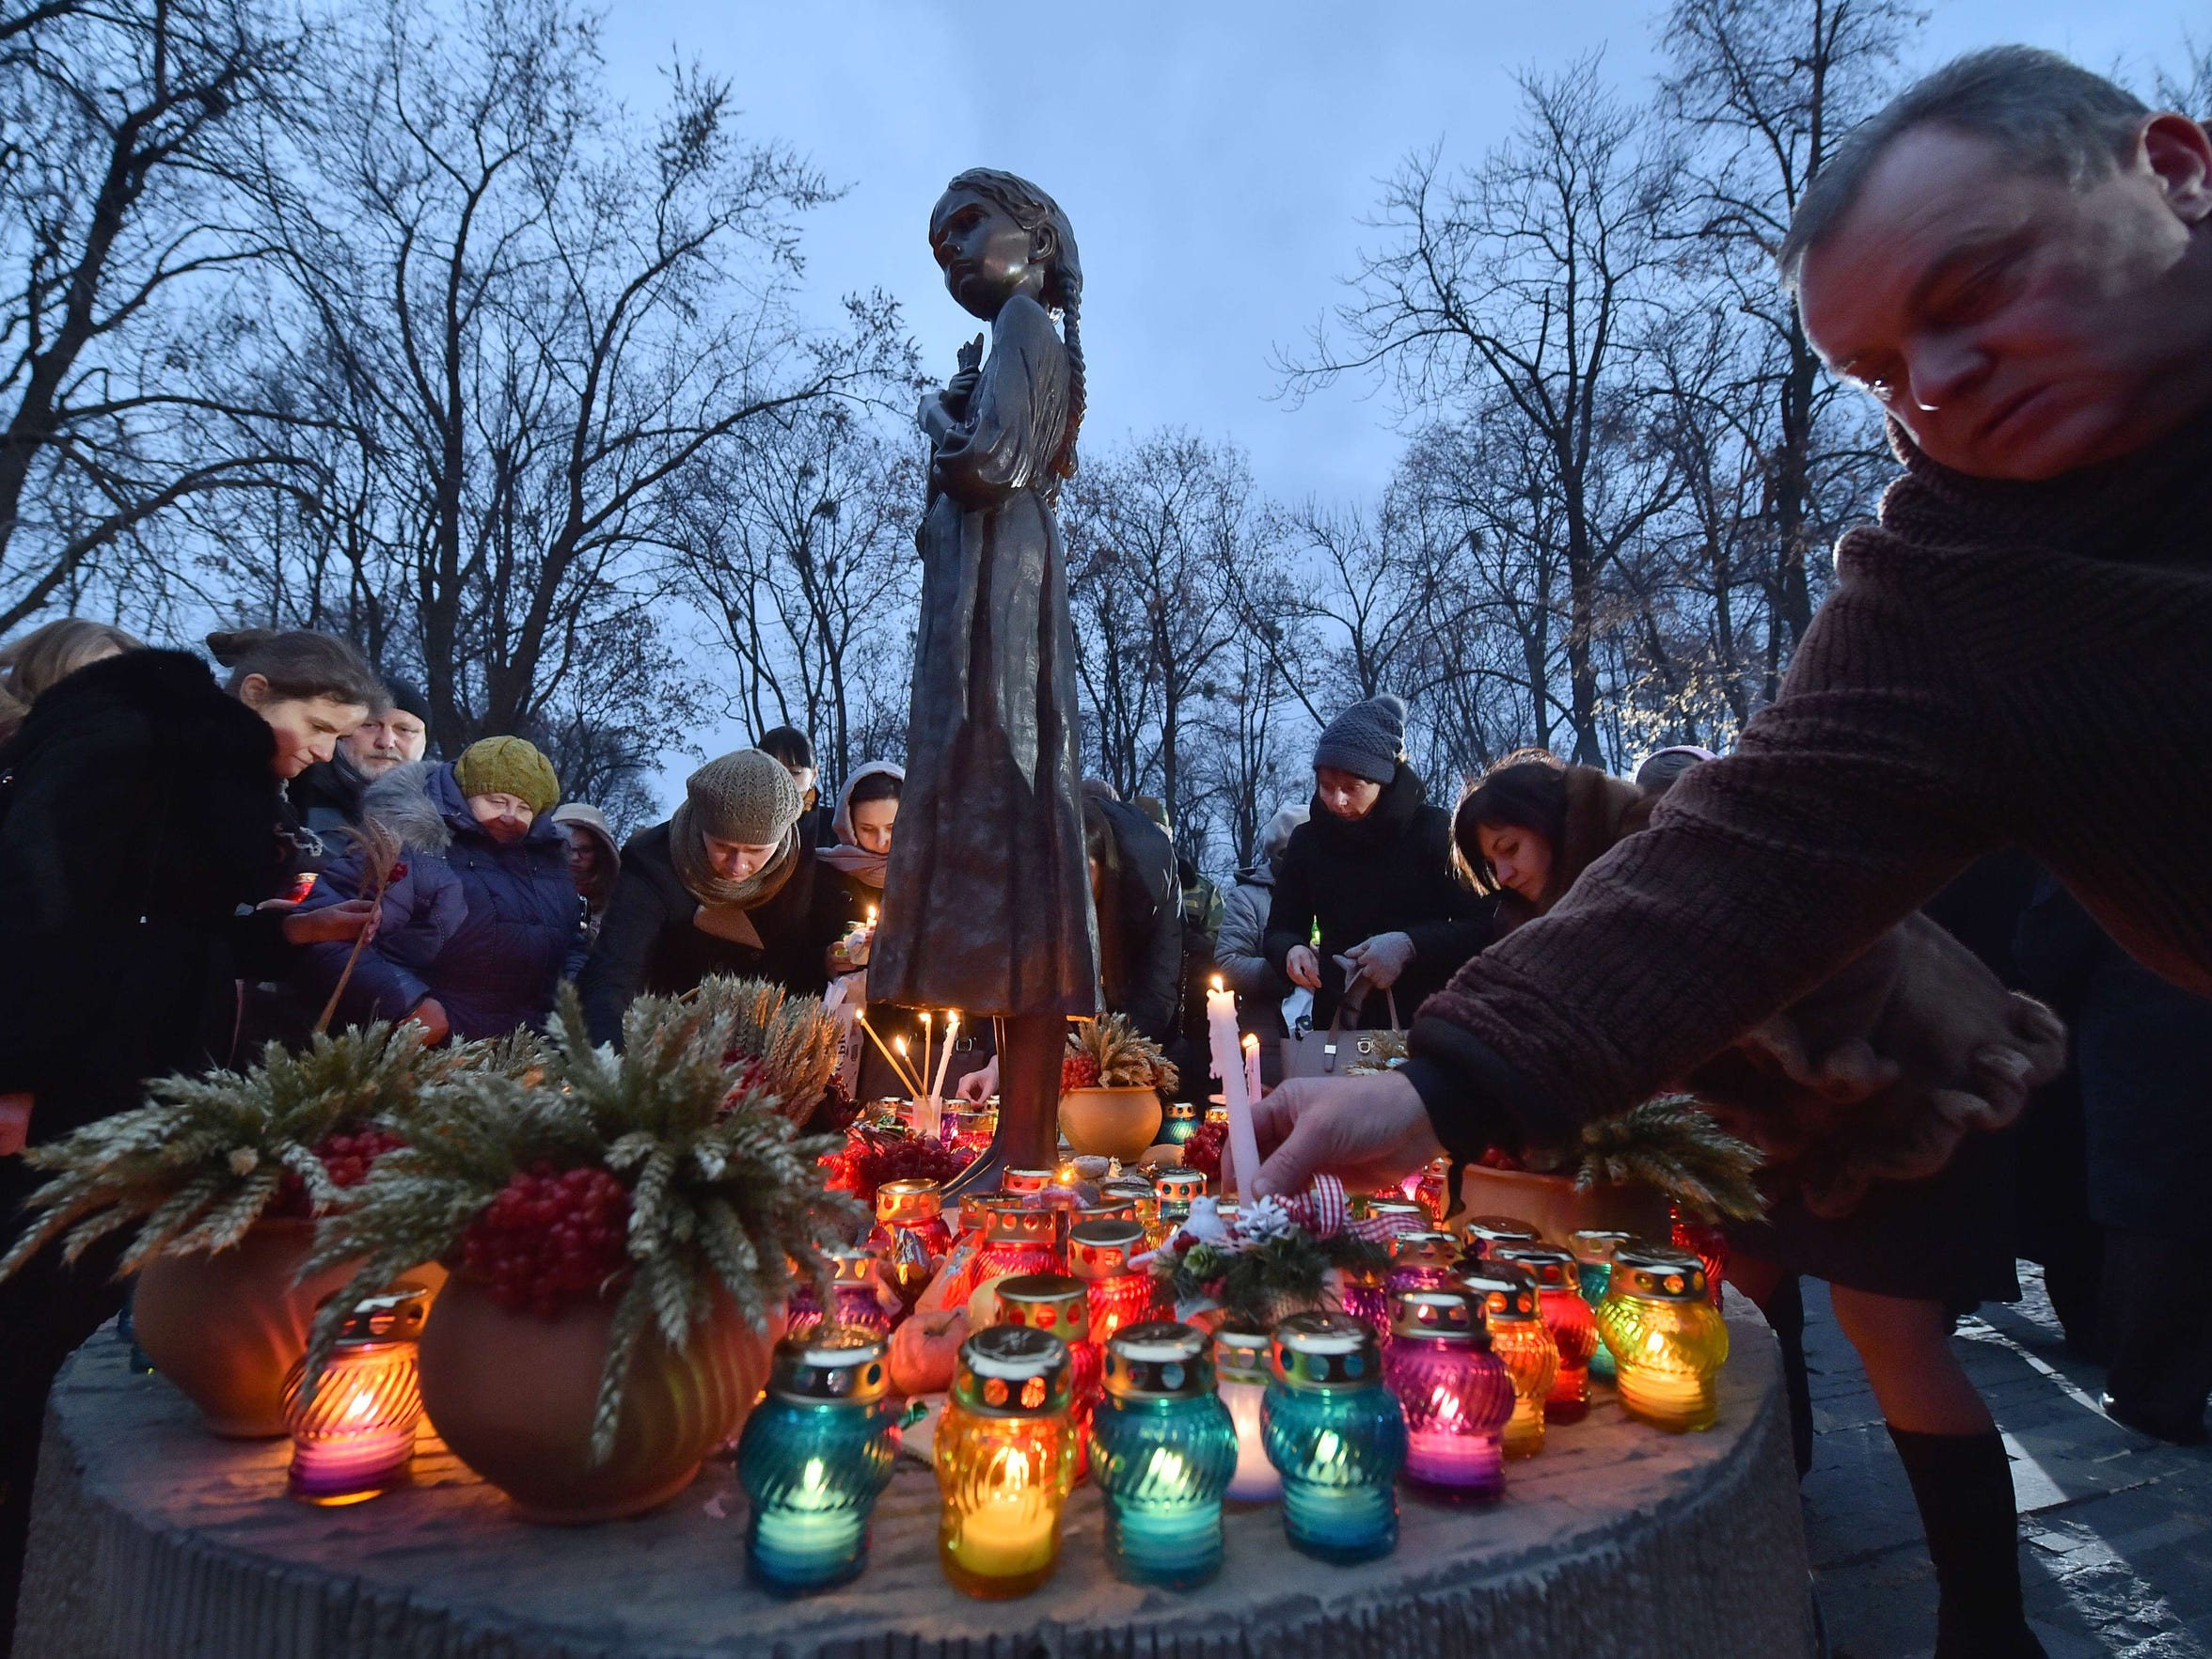 People place candles in memory of the victims of the